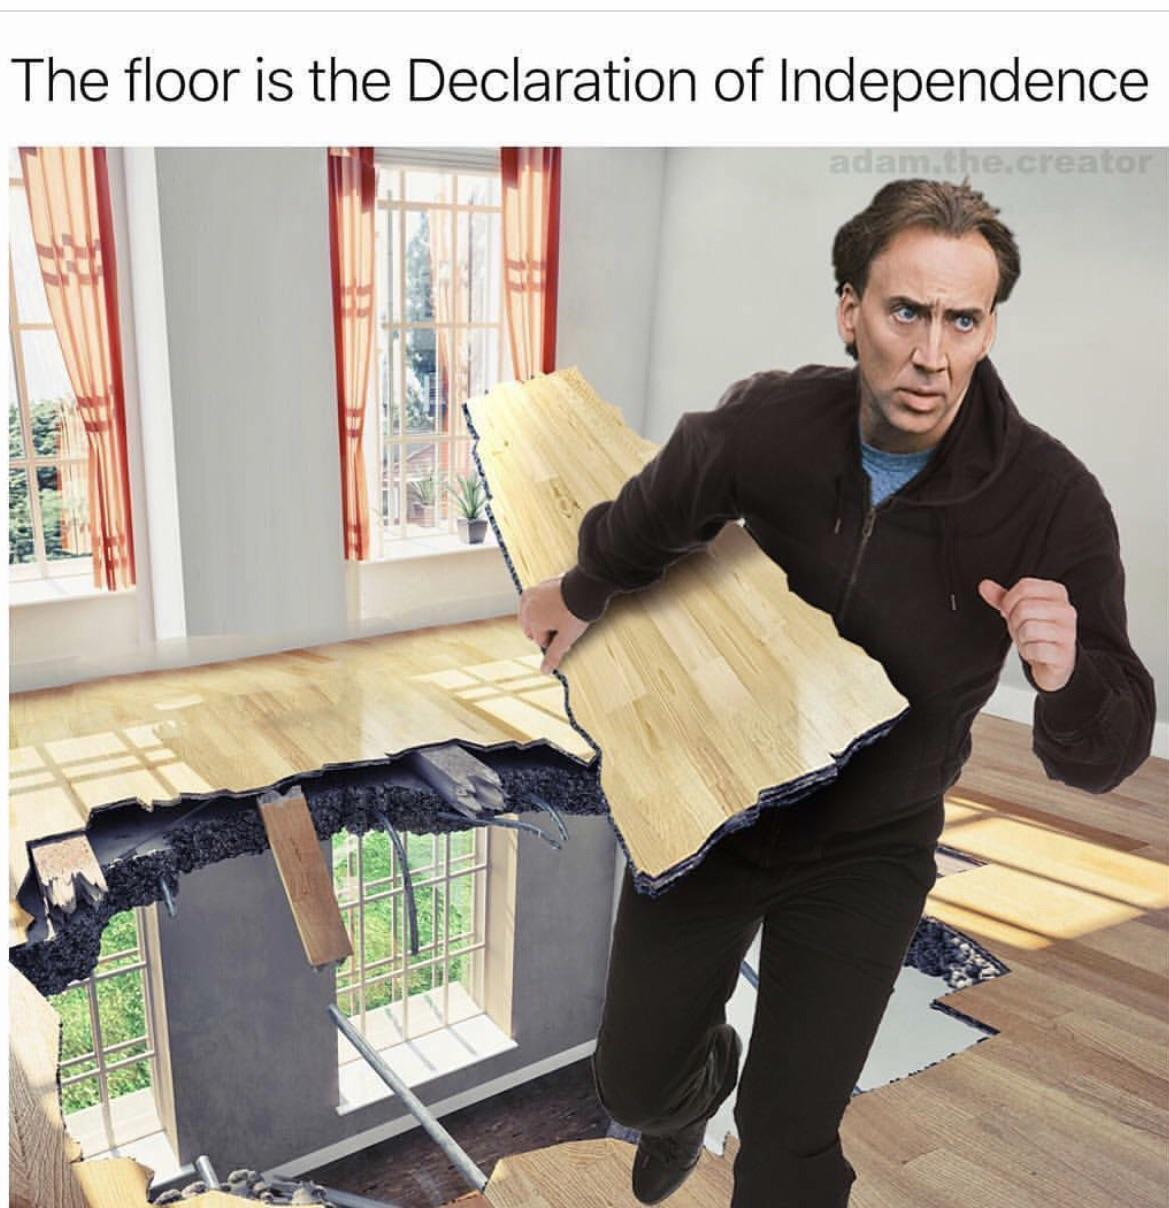 The floor is the Declaration of Independence - meme